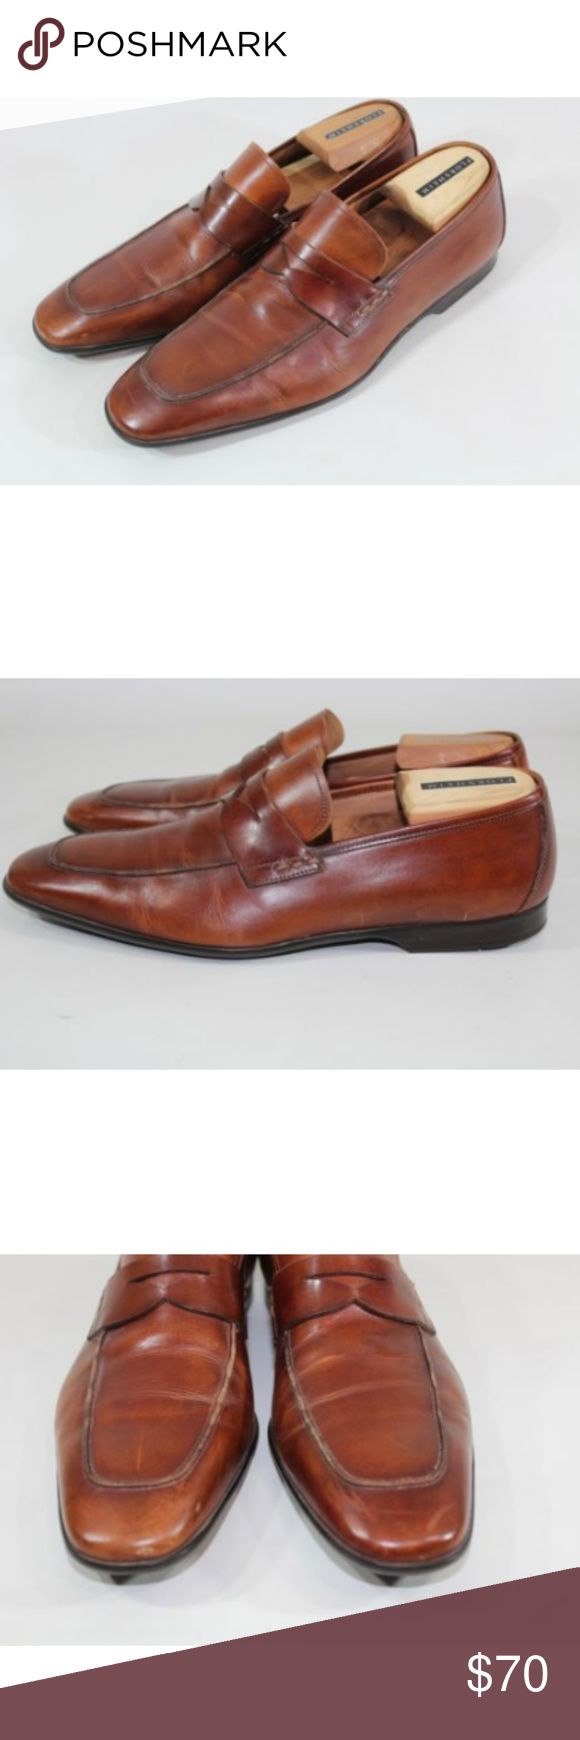 Magnanni Ramiro Mens Brown Leather Penny Loafer - Magnanni Ramiro Mid Brown Leat...